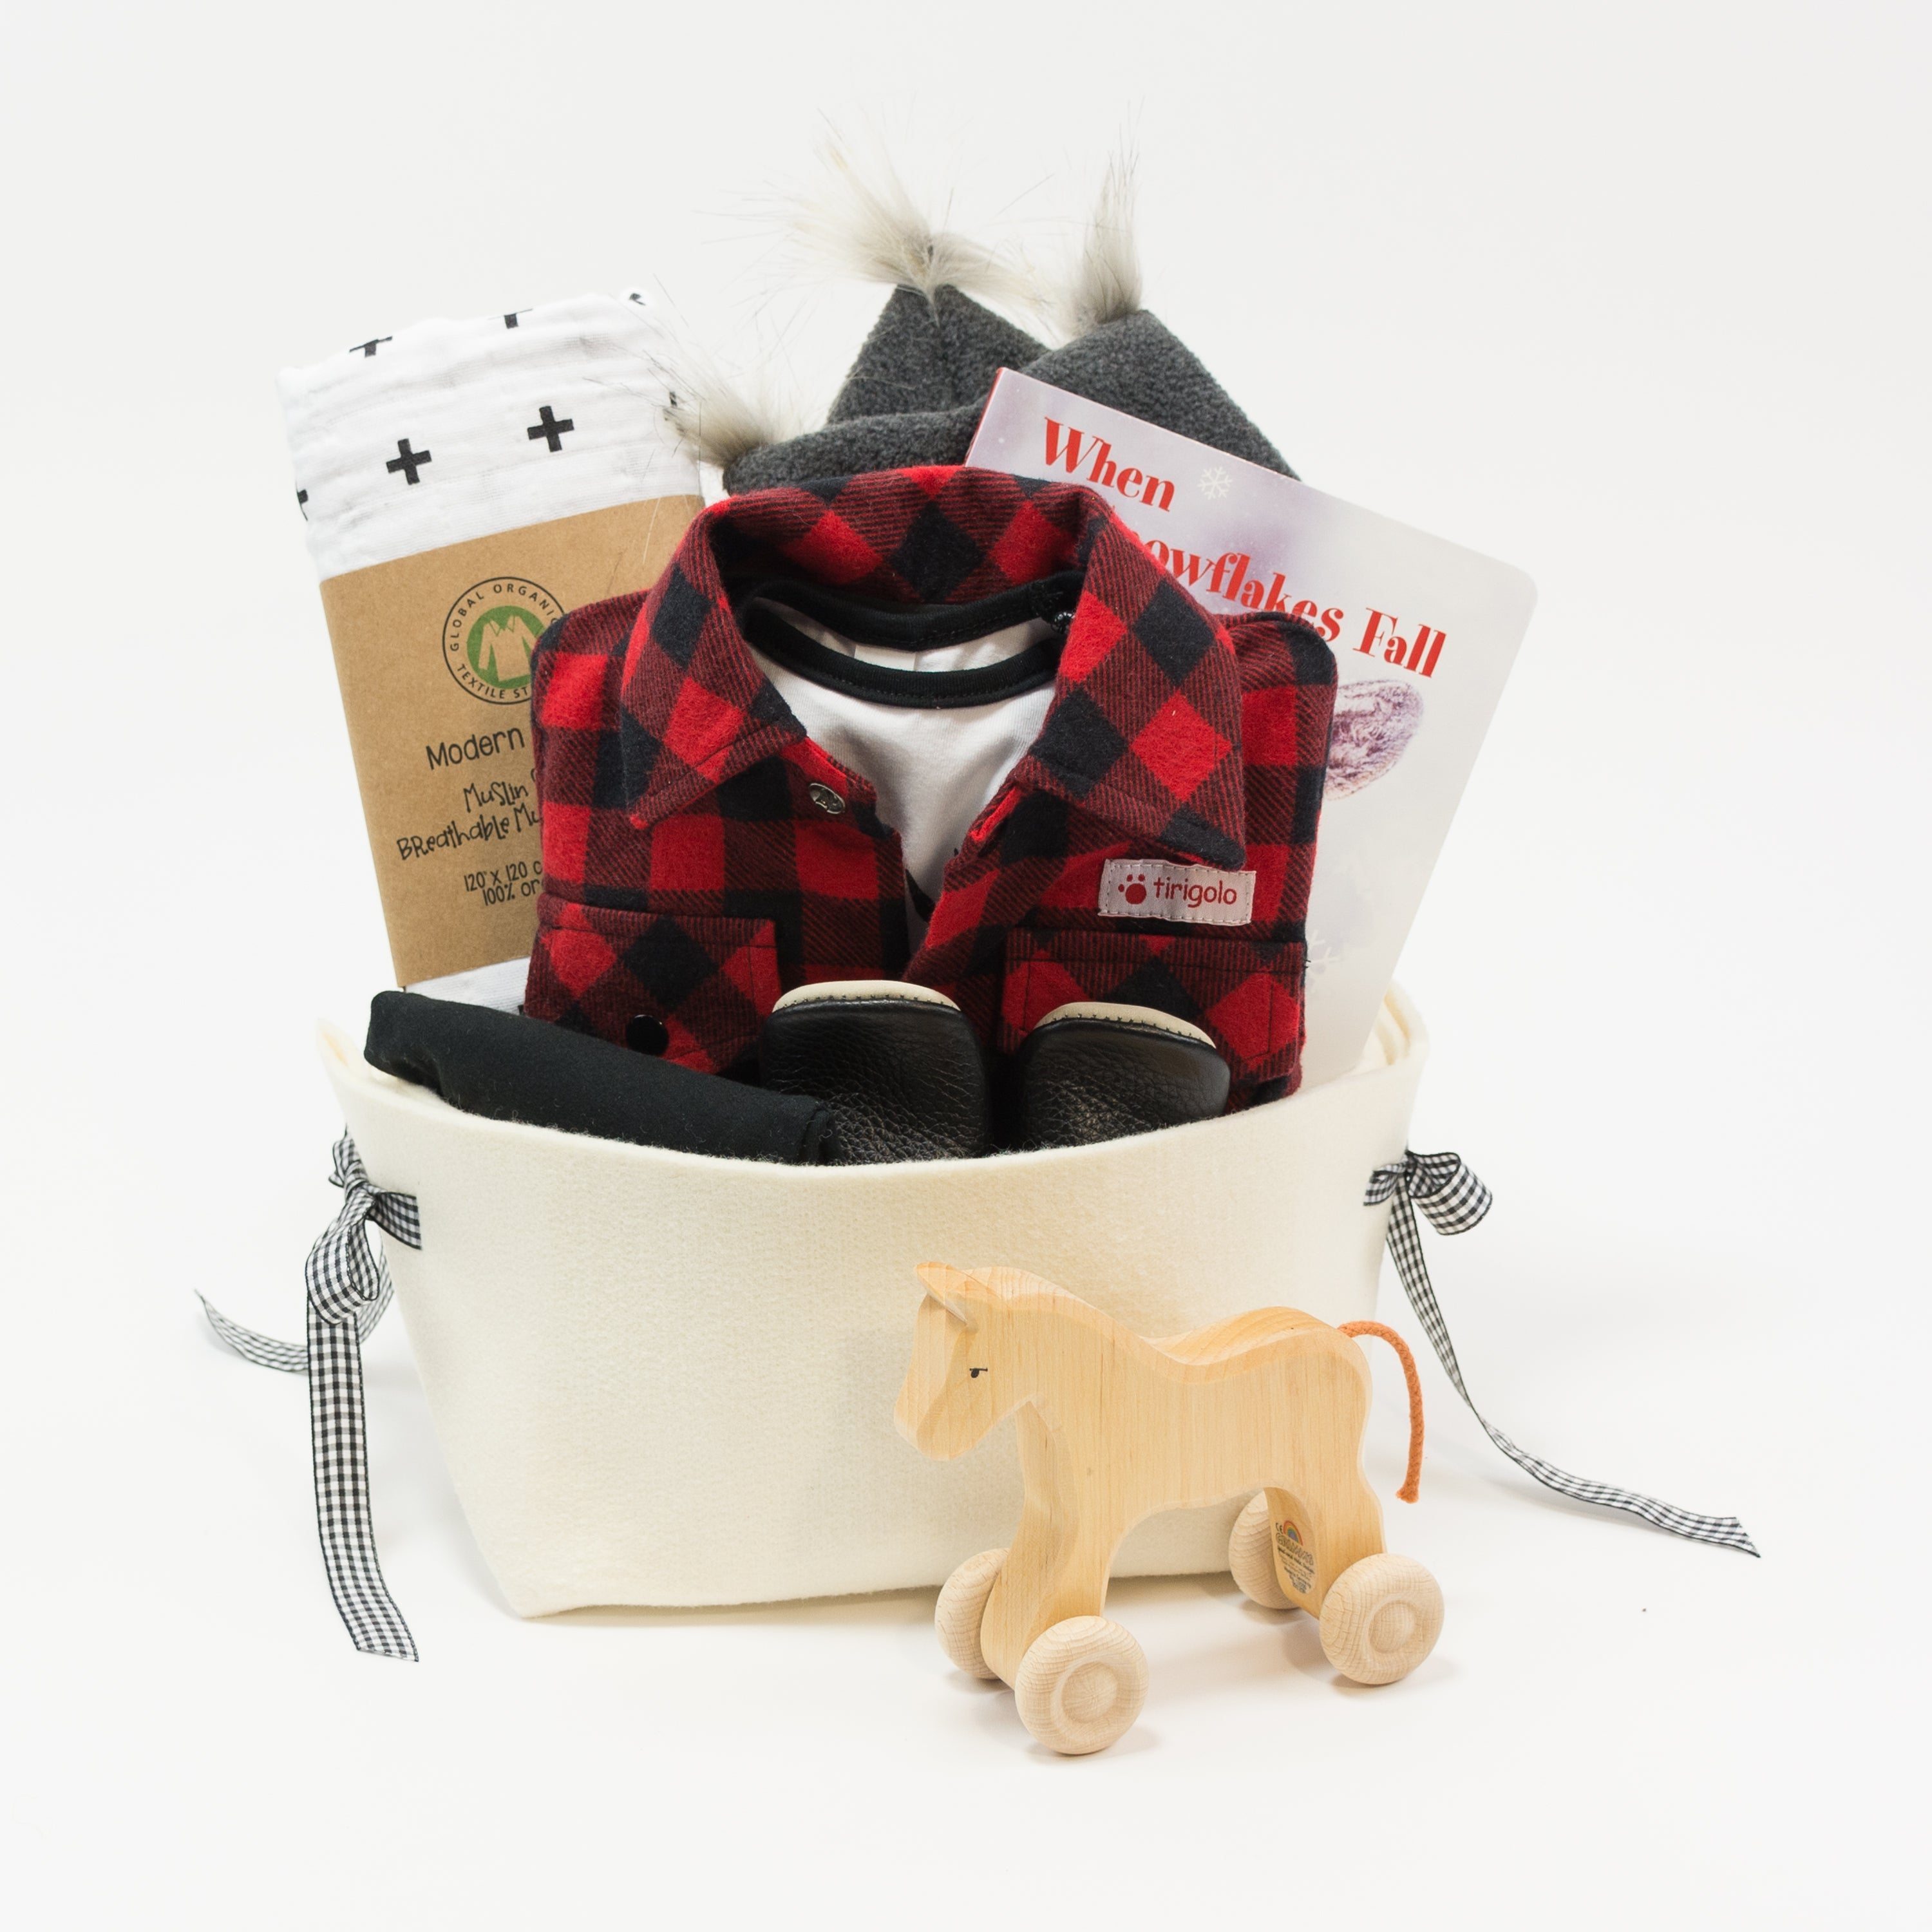 Buffalo Plaid Cool Baby Boy Gift Basket & High End Baby Gift Baskets u2013 Bonjour Baby Baskets - Luxury Baby Gifts